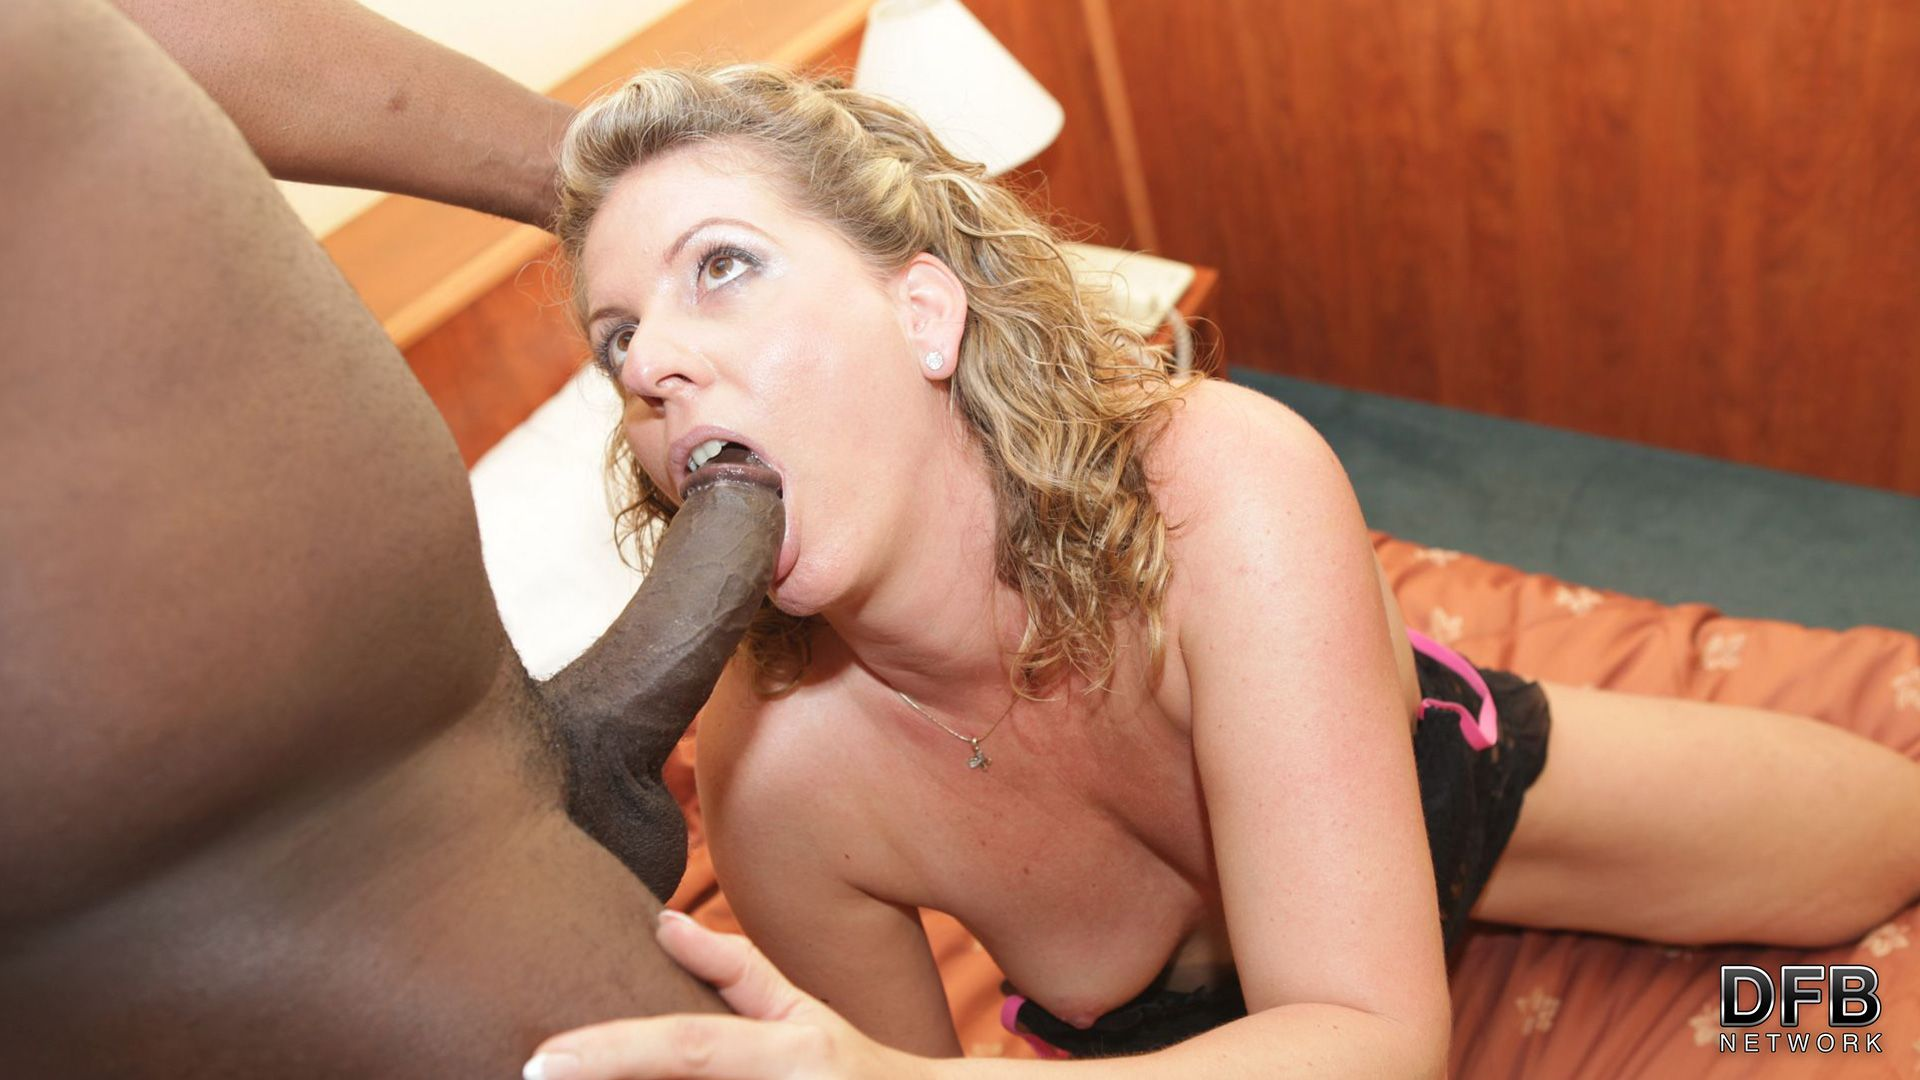 mature babe doggy fuckeda black man - dfb network